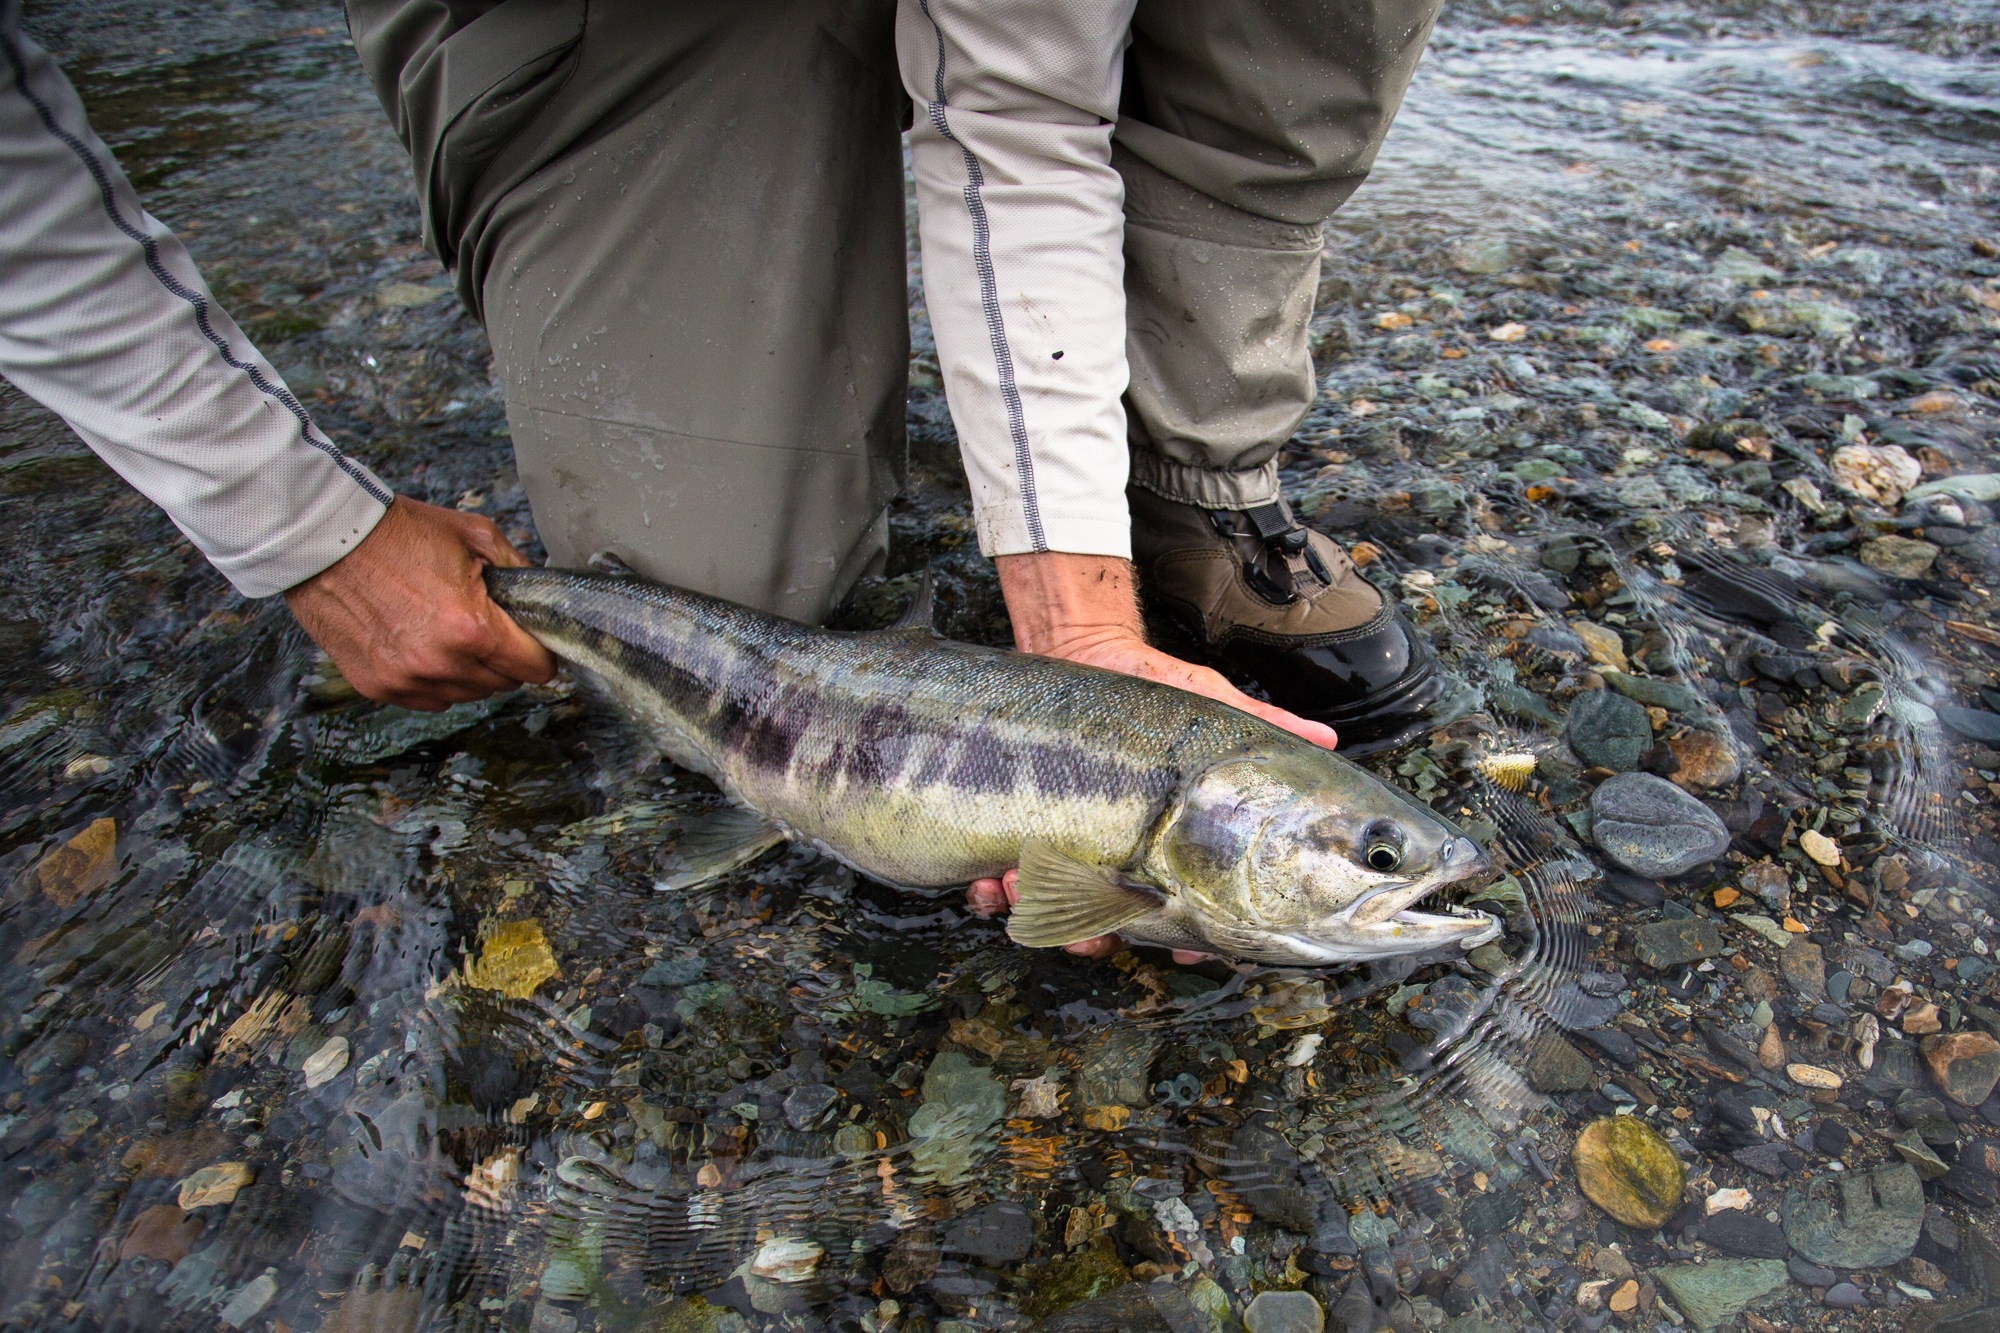 Though our quarry here are the dolly varden that have followed the chum salmon into the creek, a healthy number of chum salmon are hooked. Due to the extremely shallow water, some of these are accidentally lined or flossed in the search for dollies, but others -- like those shown here -- will inexplicably break from their spawning behavior to chase and eat an egg imitation. The heft of a 10 pound chum salmon on a 4 or 5 weight rod is a recipe for a sore arm, a broken rod, or both (photo: Chad Shmukler).